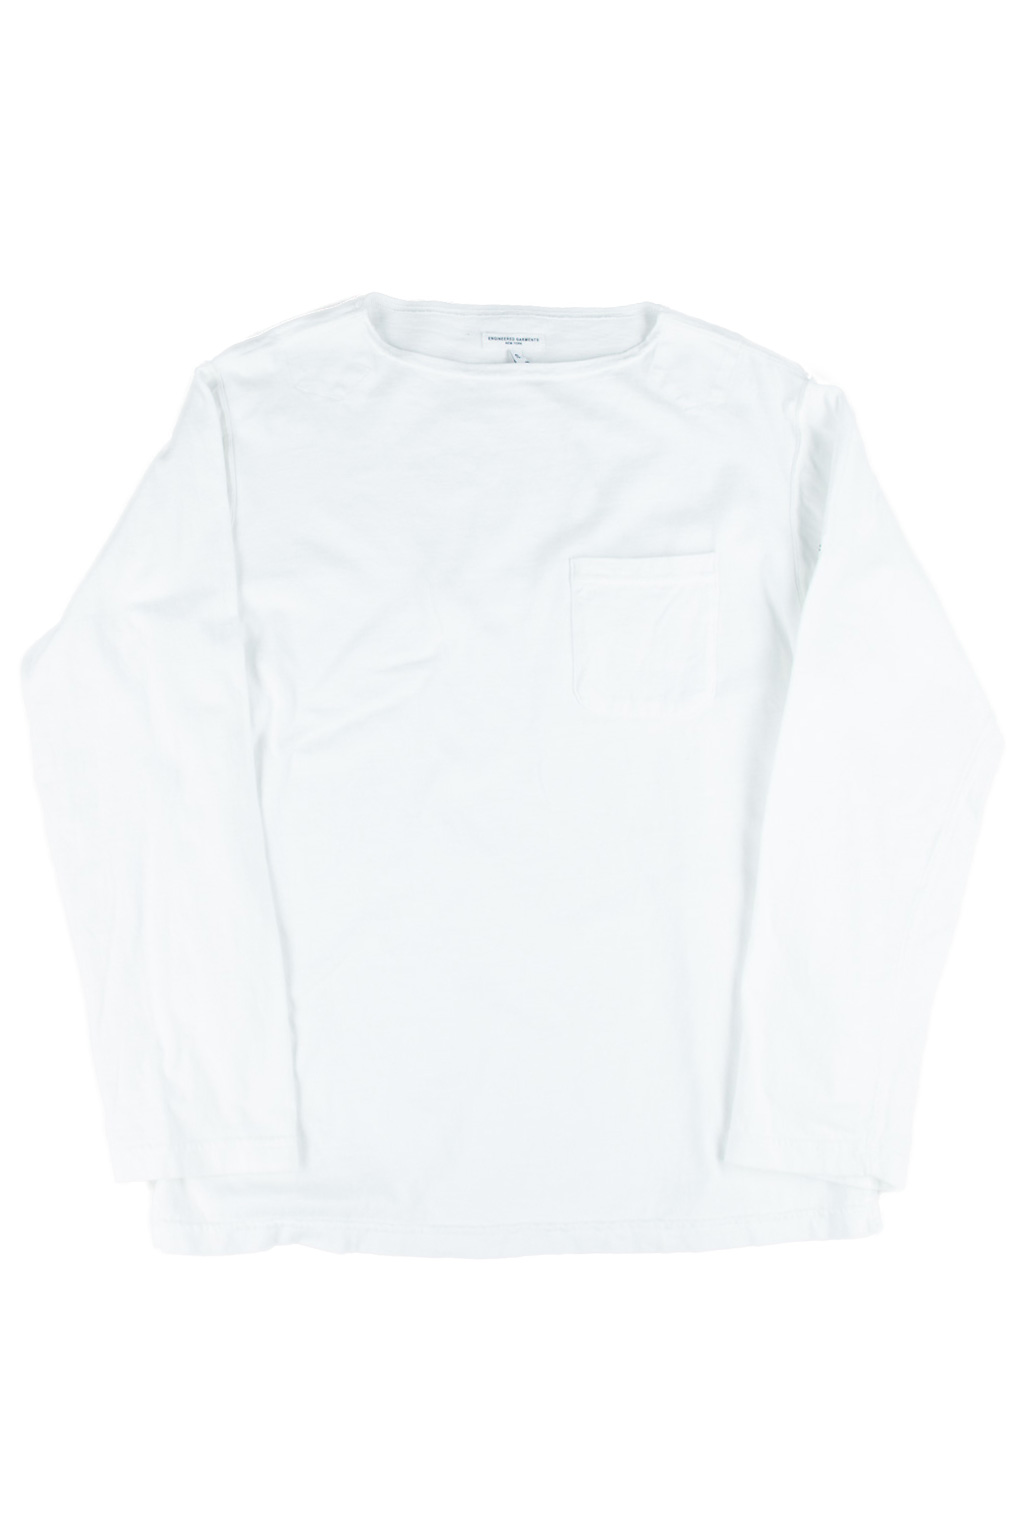 Bask Shirt - White Cotton Jersey